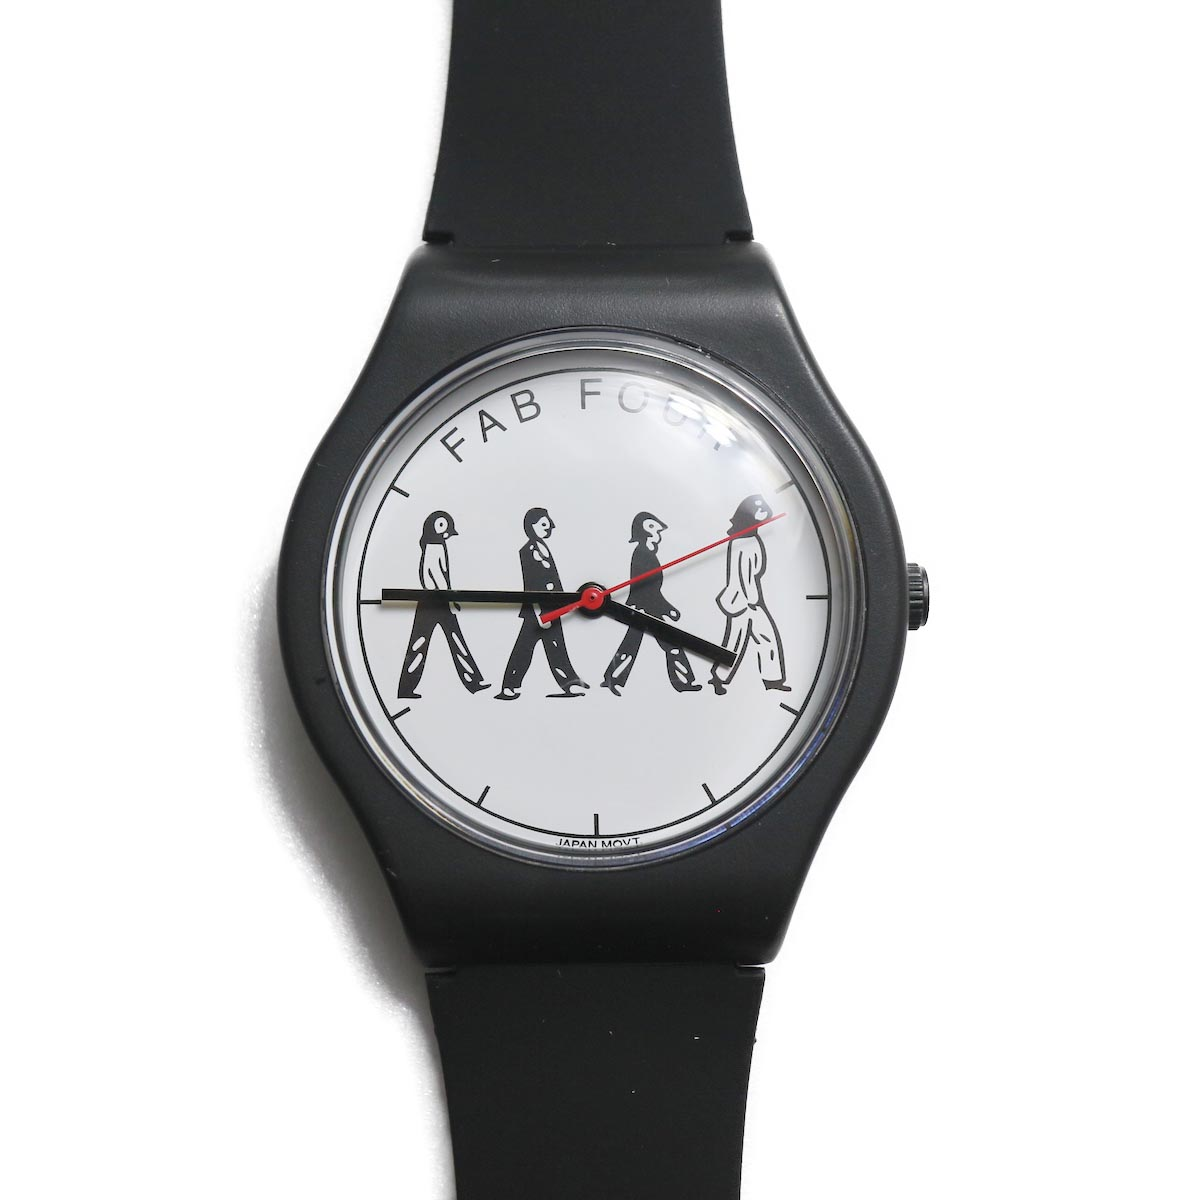 CHRISTOPHER BROWN / WATCH FAB01 文字盤